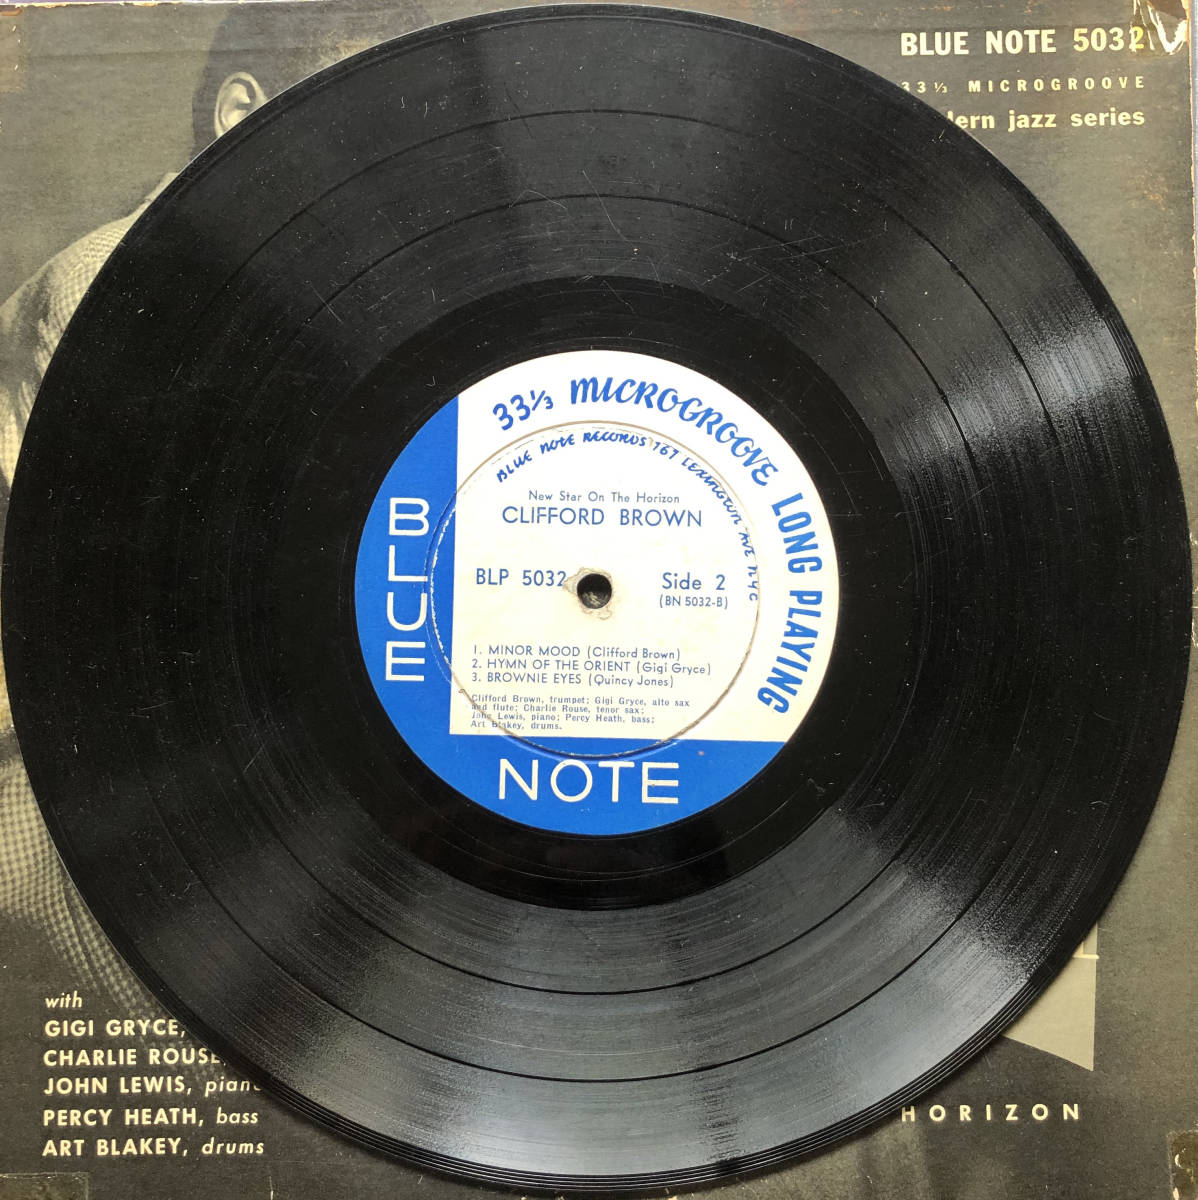 New Star On The Horizon / Clifford Brown / Blue Note 5032 / 10inch LP_画像6